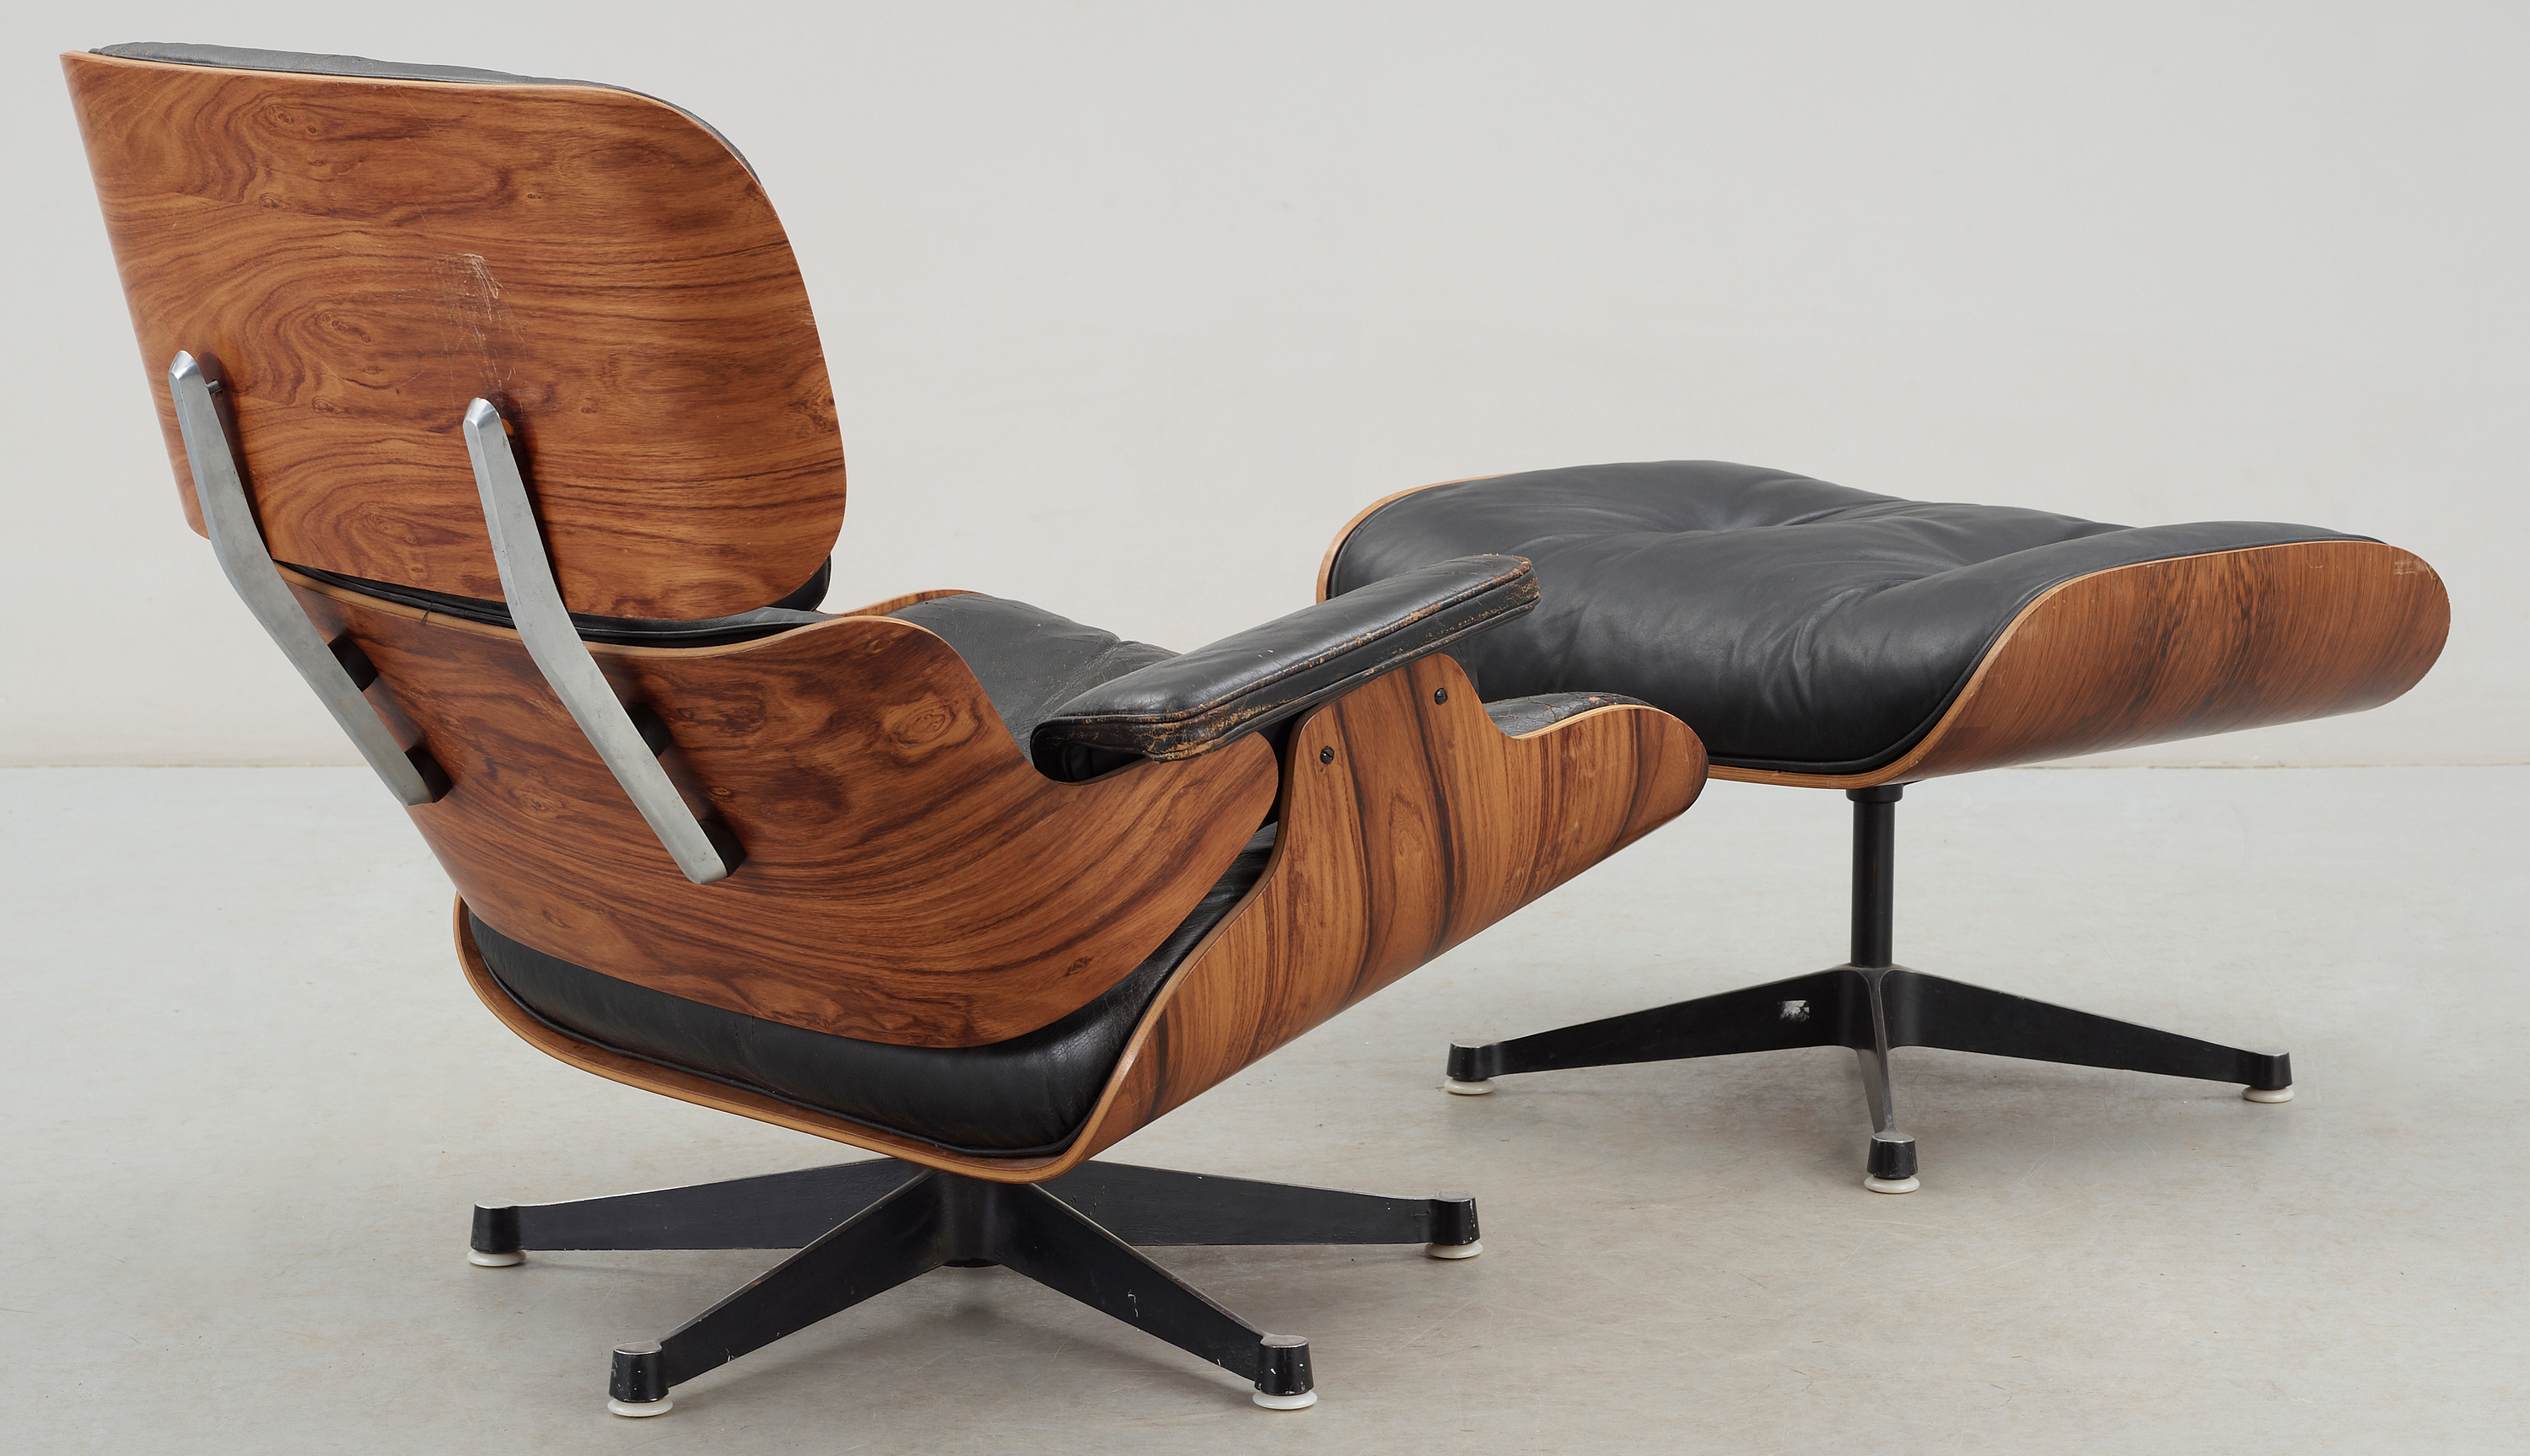 F 197 T 214 Lj Samt Fotpall Quot Lounge Chair Quot Charles Amp Ray Eames